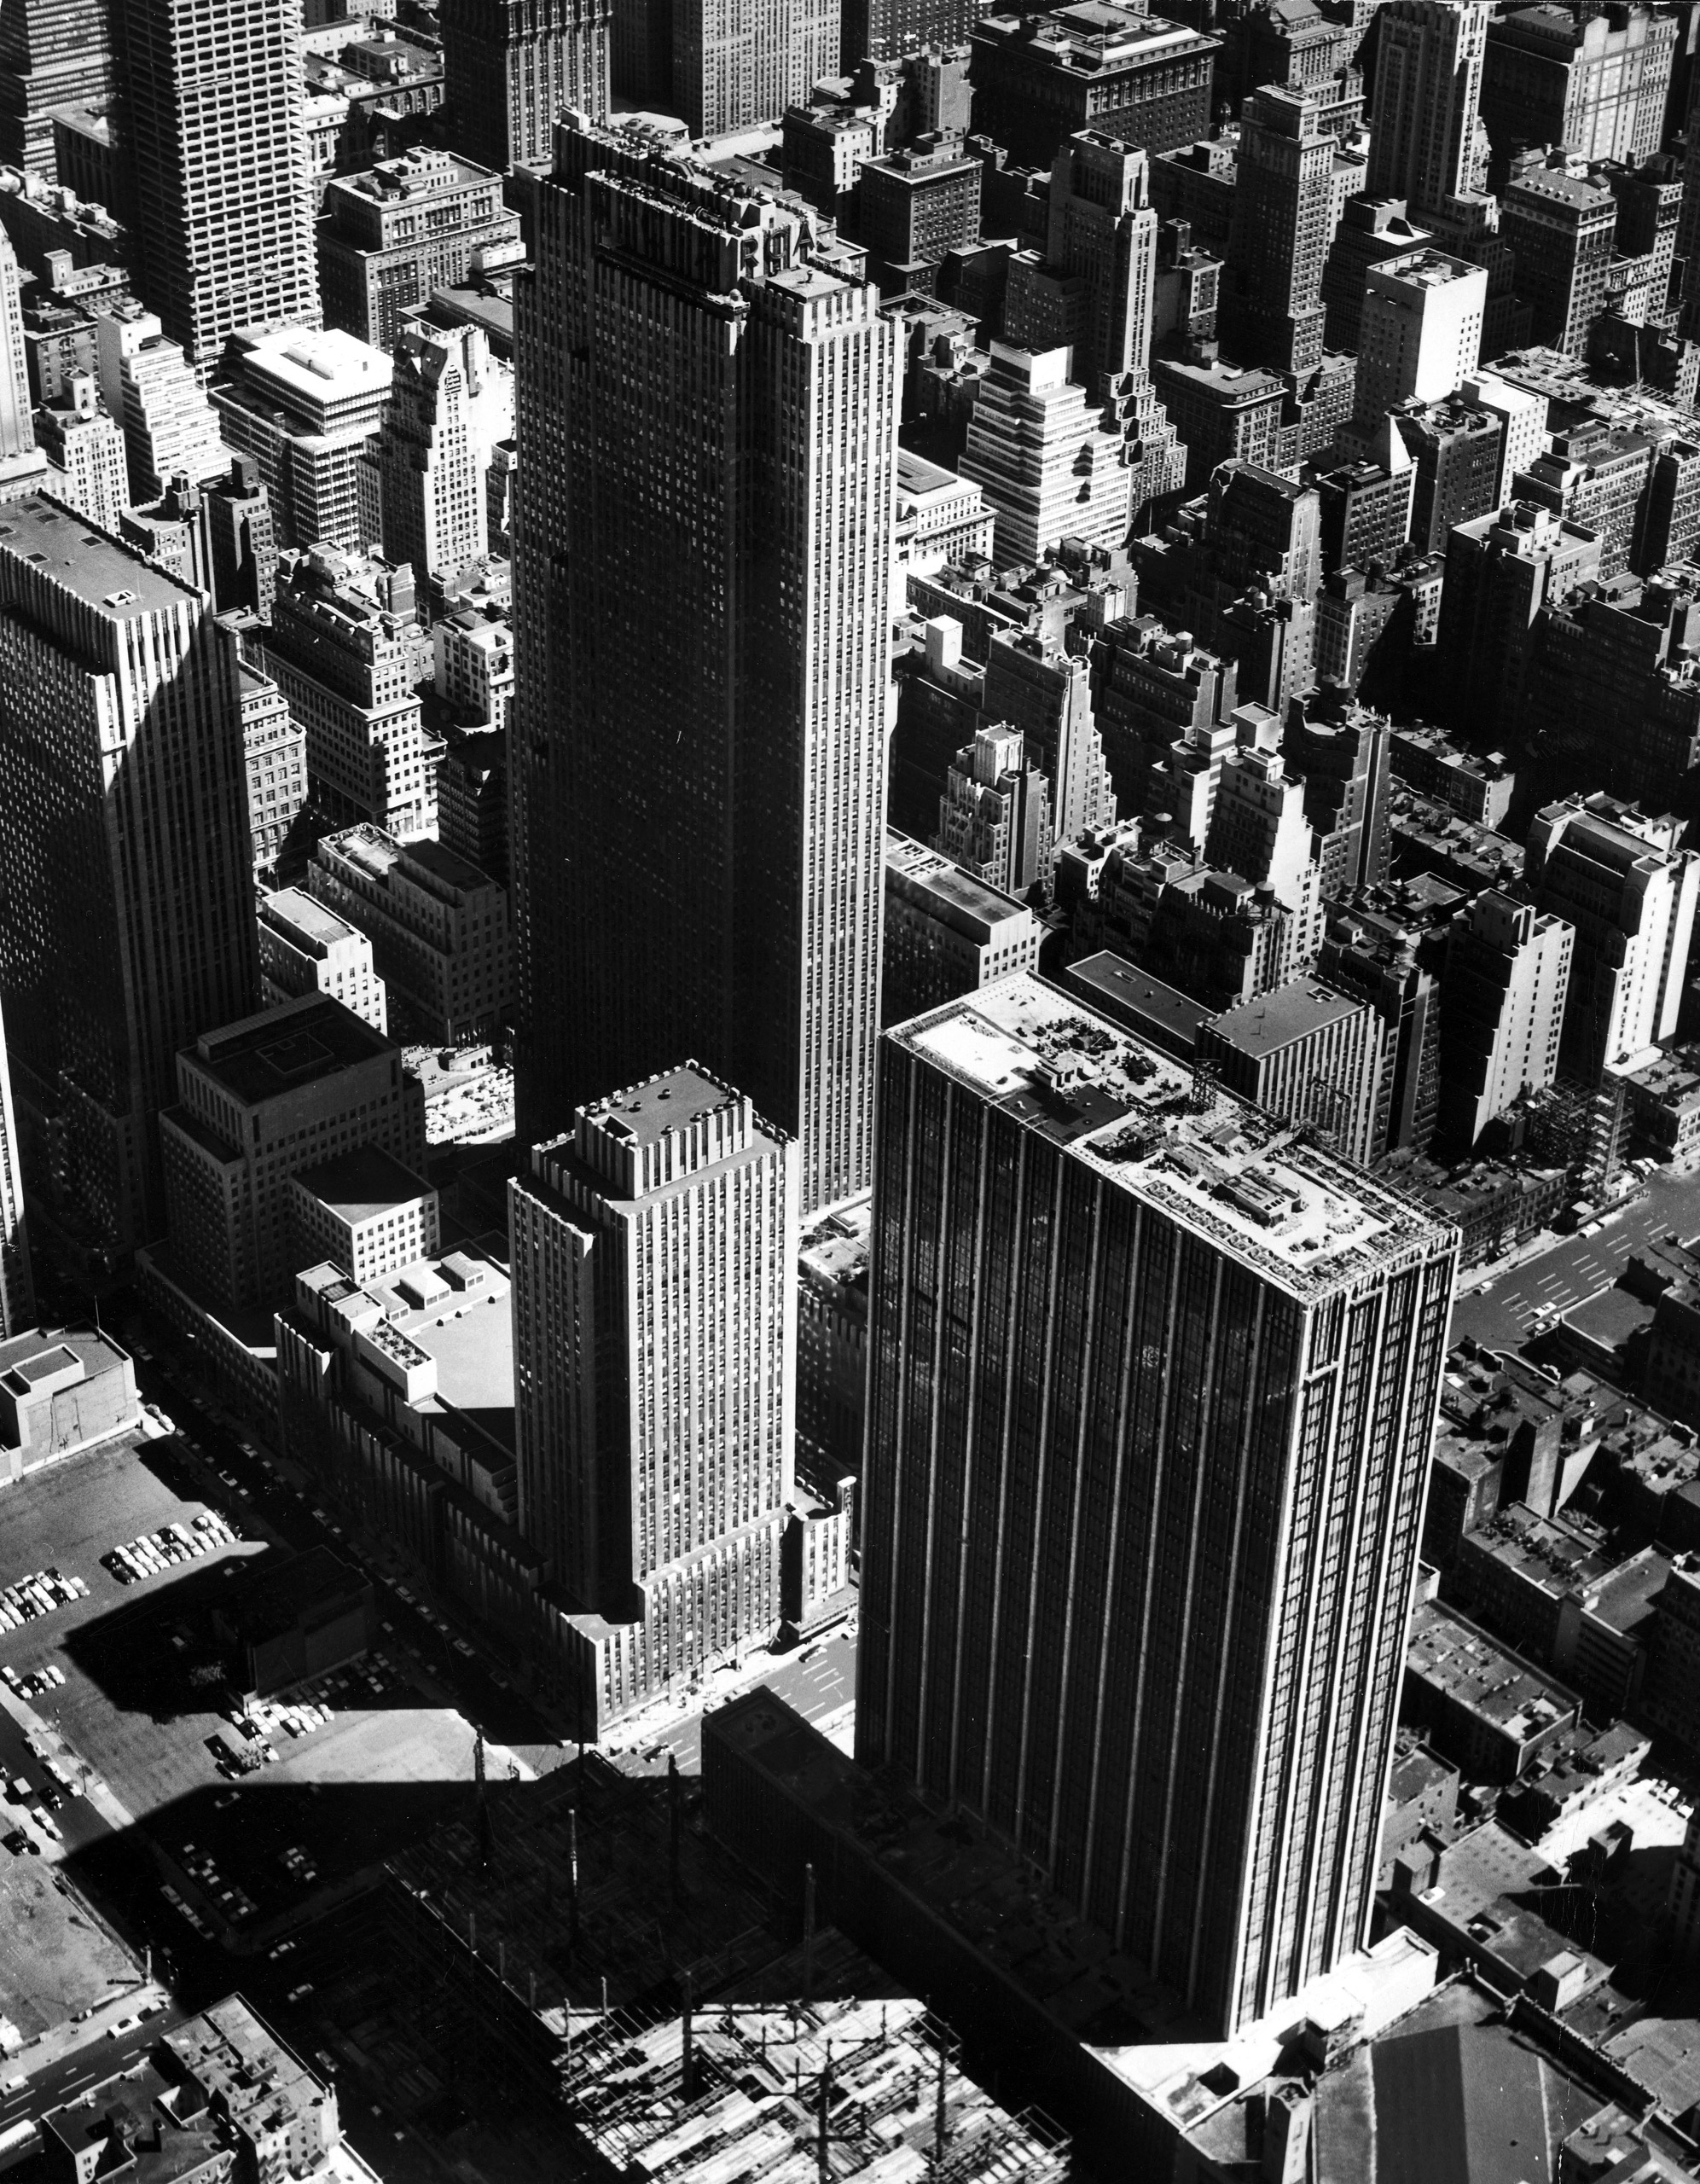 Aerial view of the Rockefeller Center complex of buildings, at the center of which is the tallest, the RCA Building. In the foreground is the nearly completed Time-Life Building (1959, Harrison, Abramovitz, & Harris), where the company moved after its residence in the Time & Life Building at 9 Rockefeller Plaza.